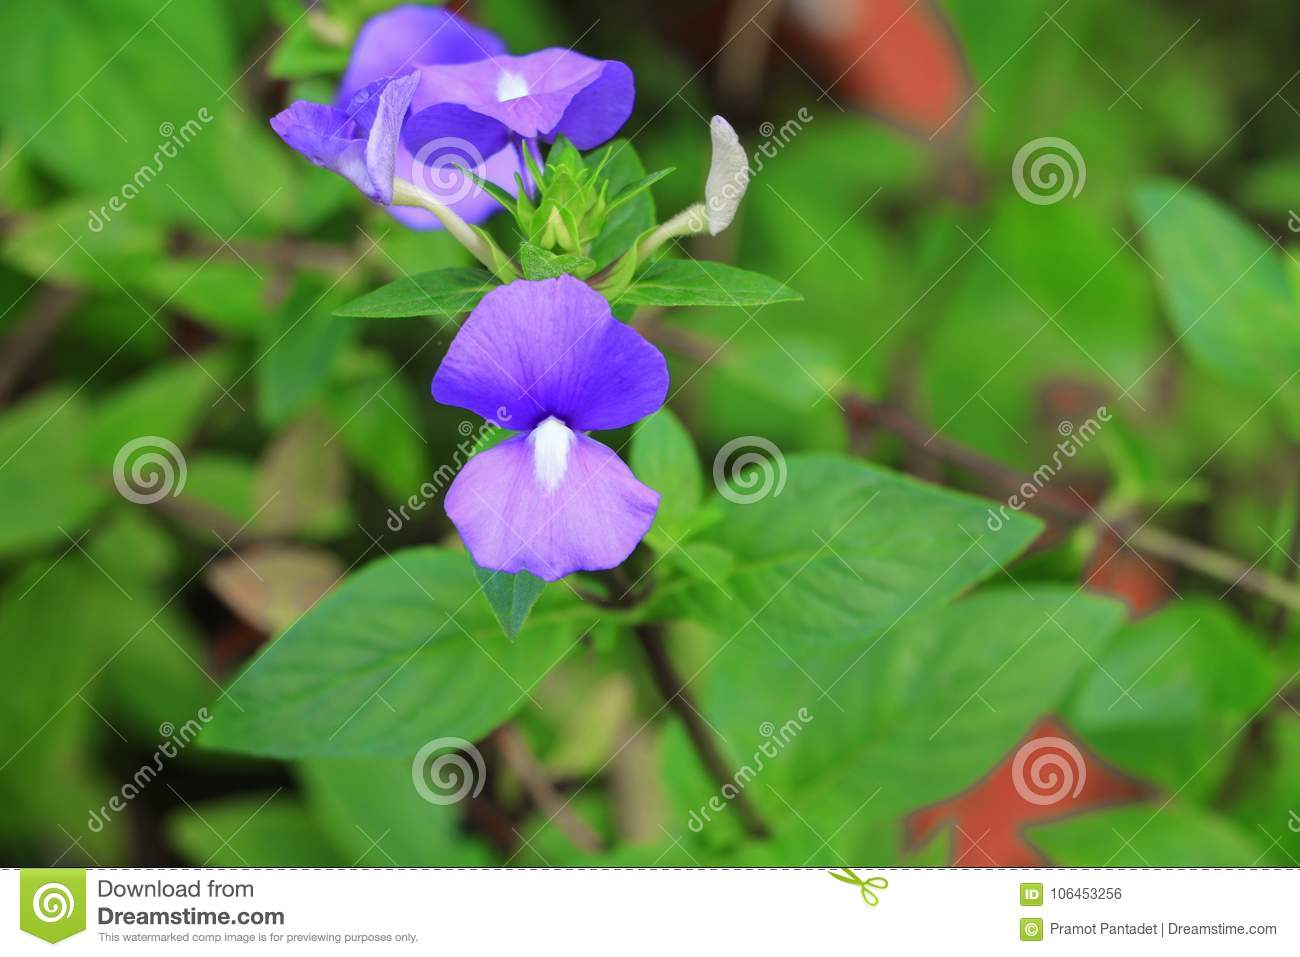 Purple Brazilian Snapdragon Beautiful Flower Otacanthus Caeruleus